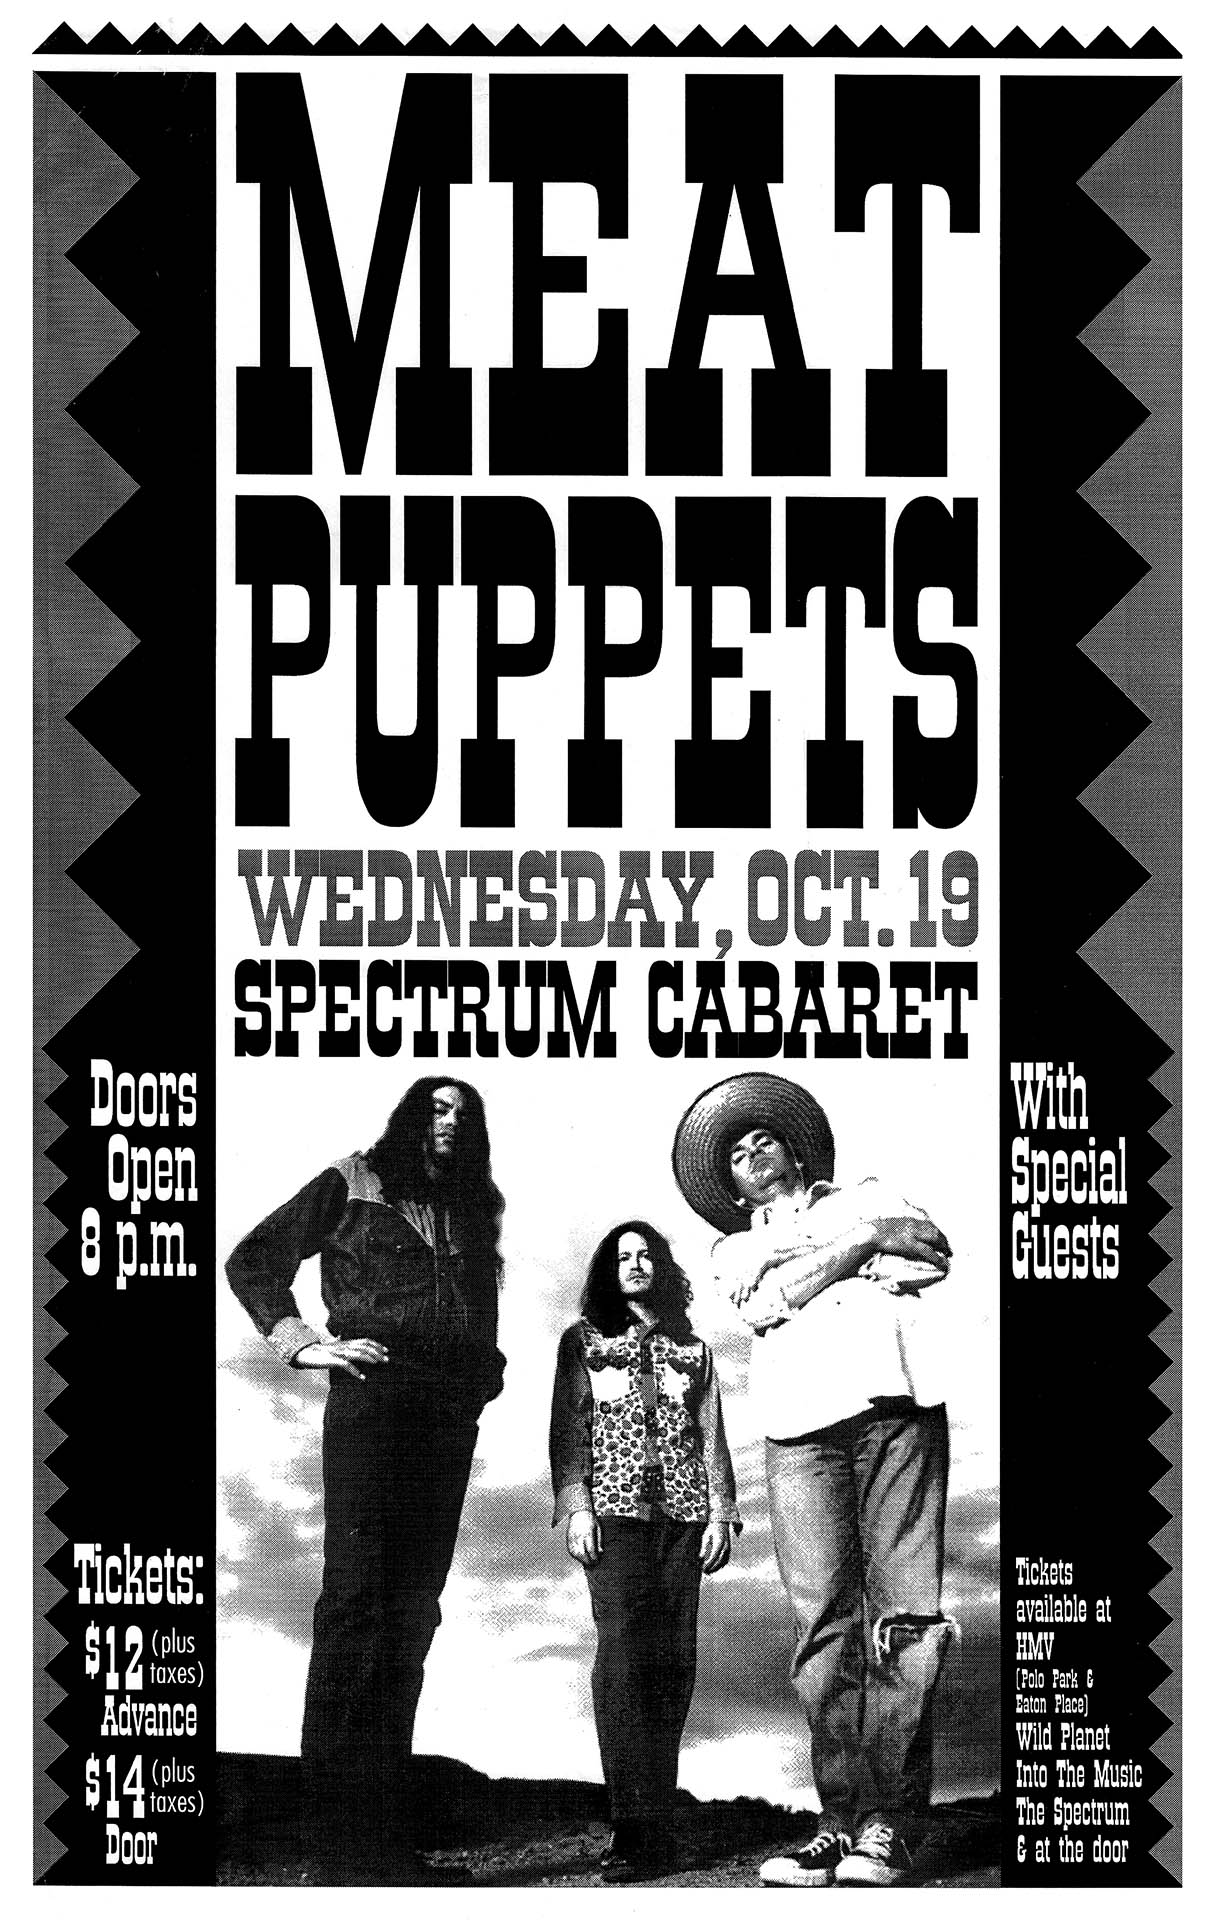 Meat Puppets - 1994